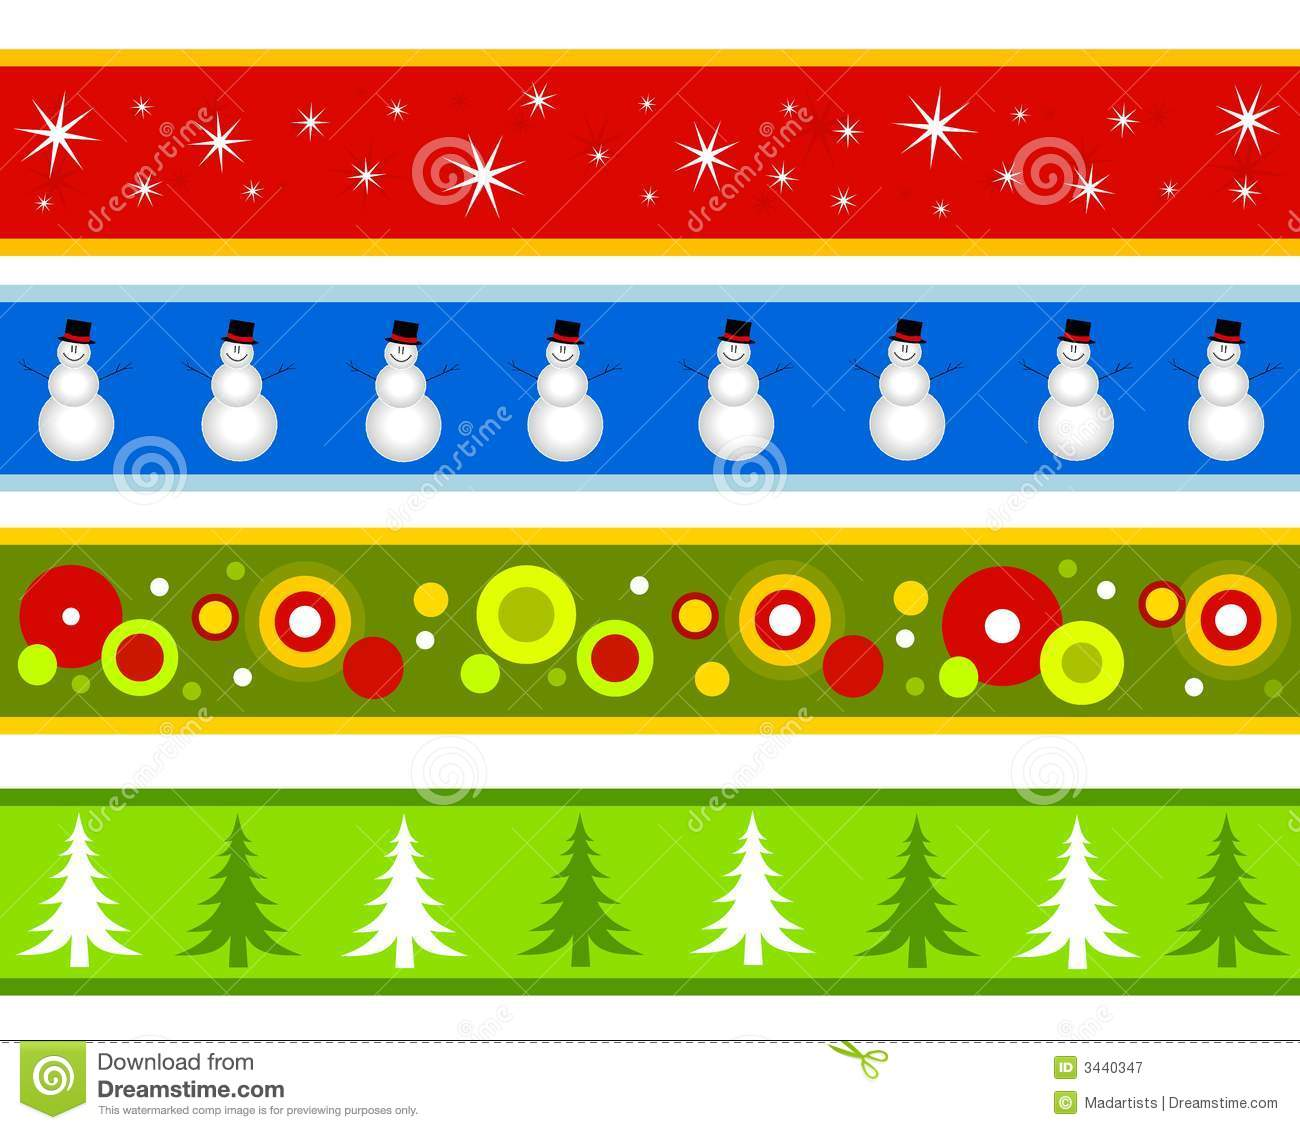 Christmas Borders or Banners .-Christmas Borders or Banners .-8